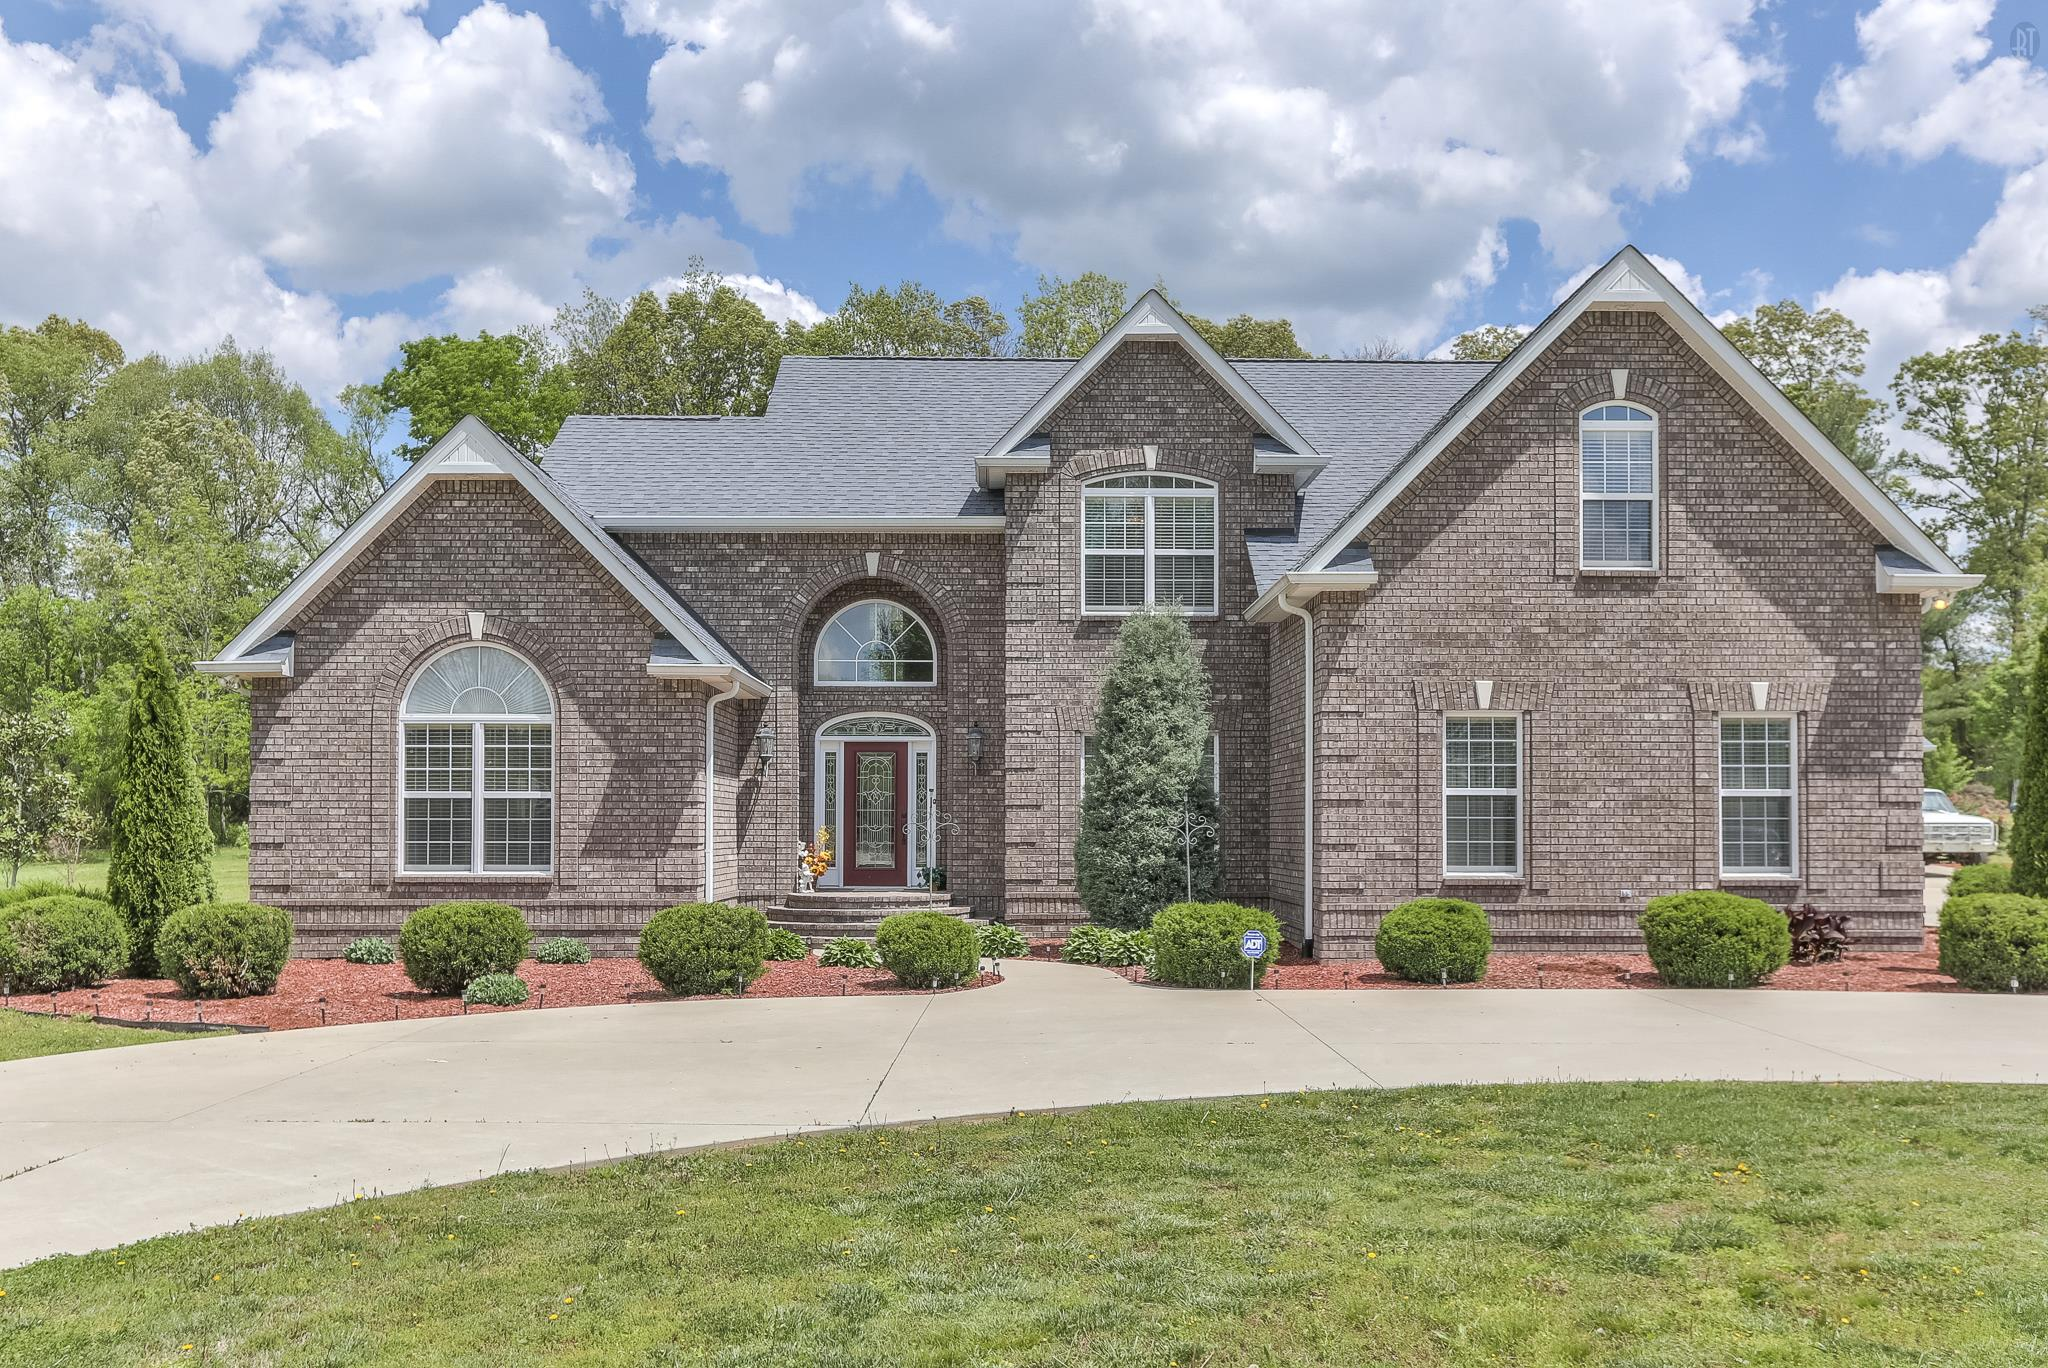 147 Bowling Alley Rd, Manchester, TN 37355